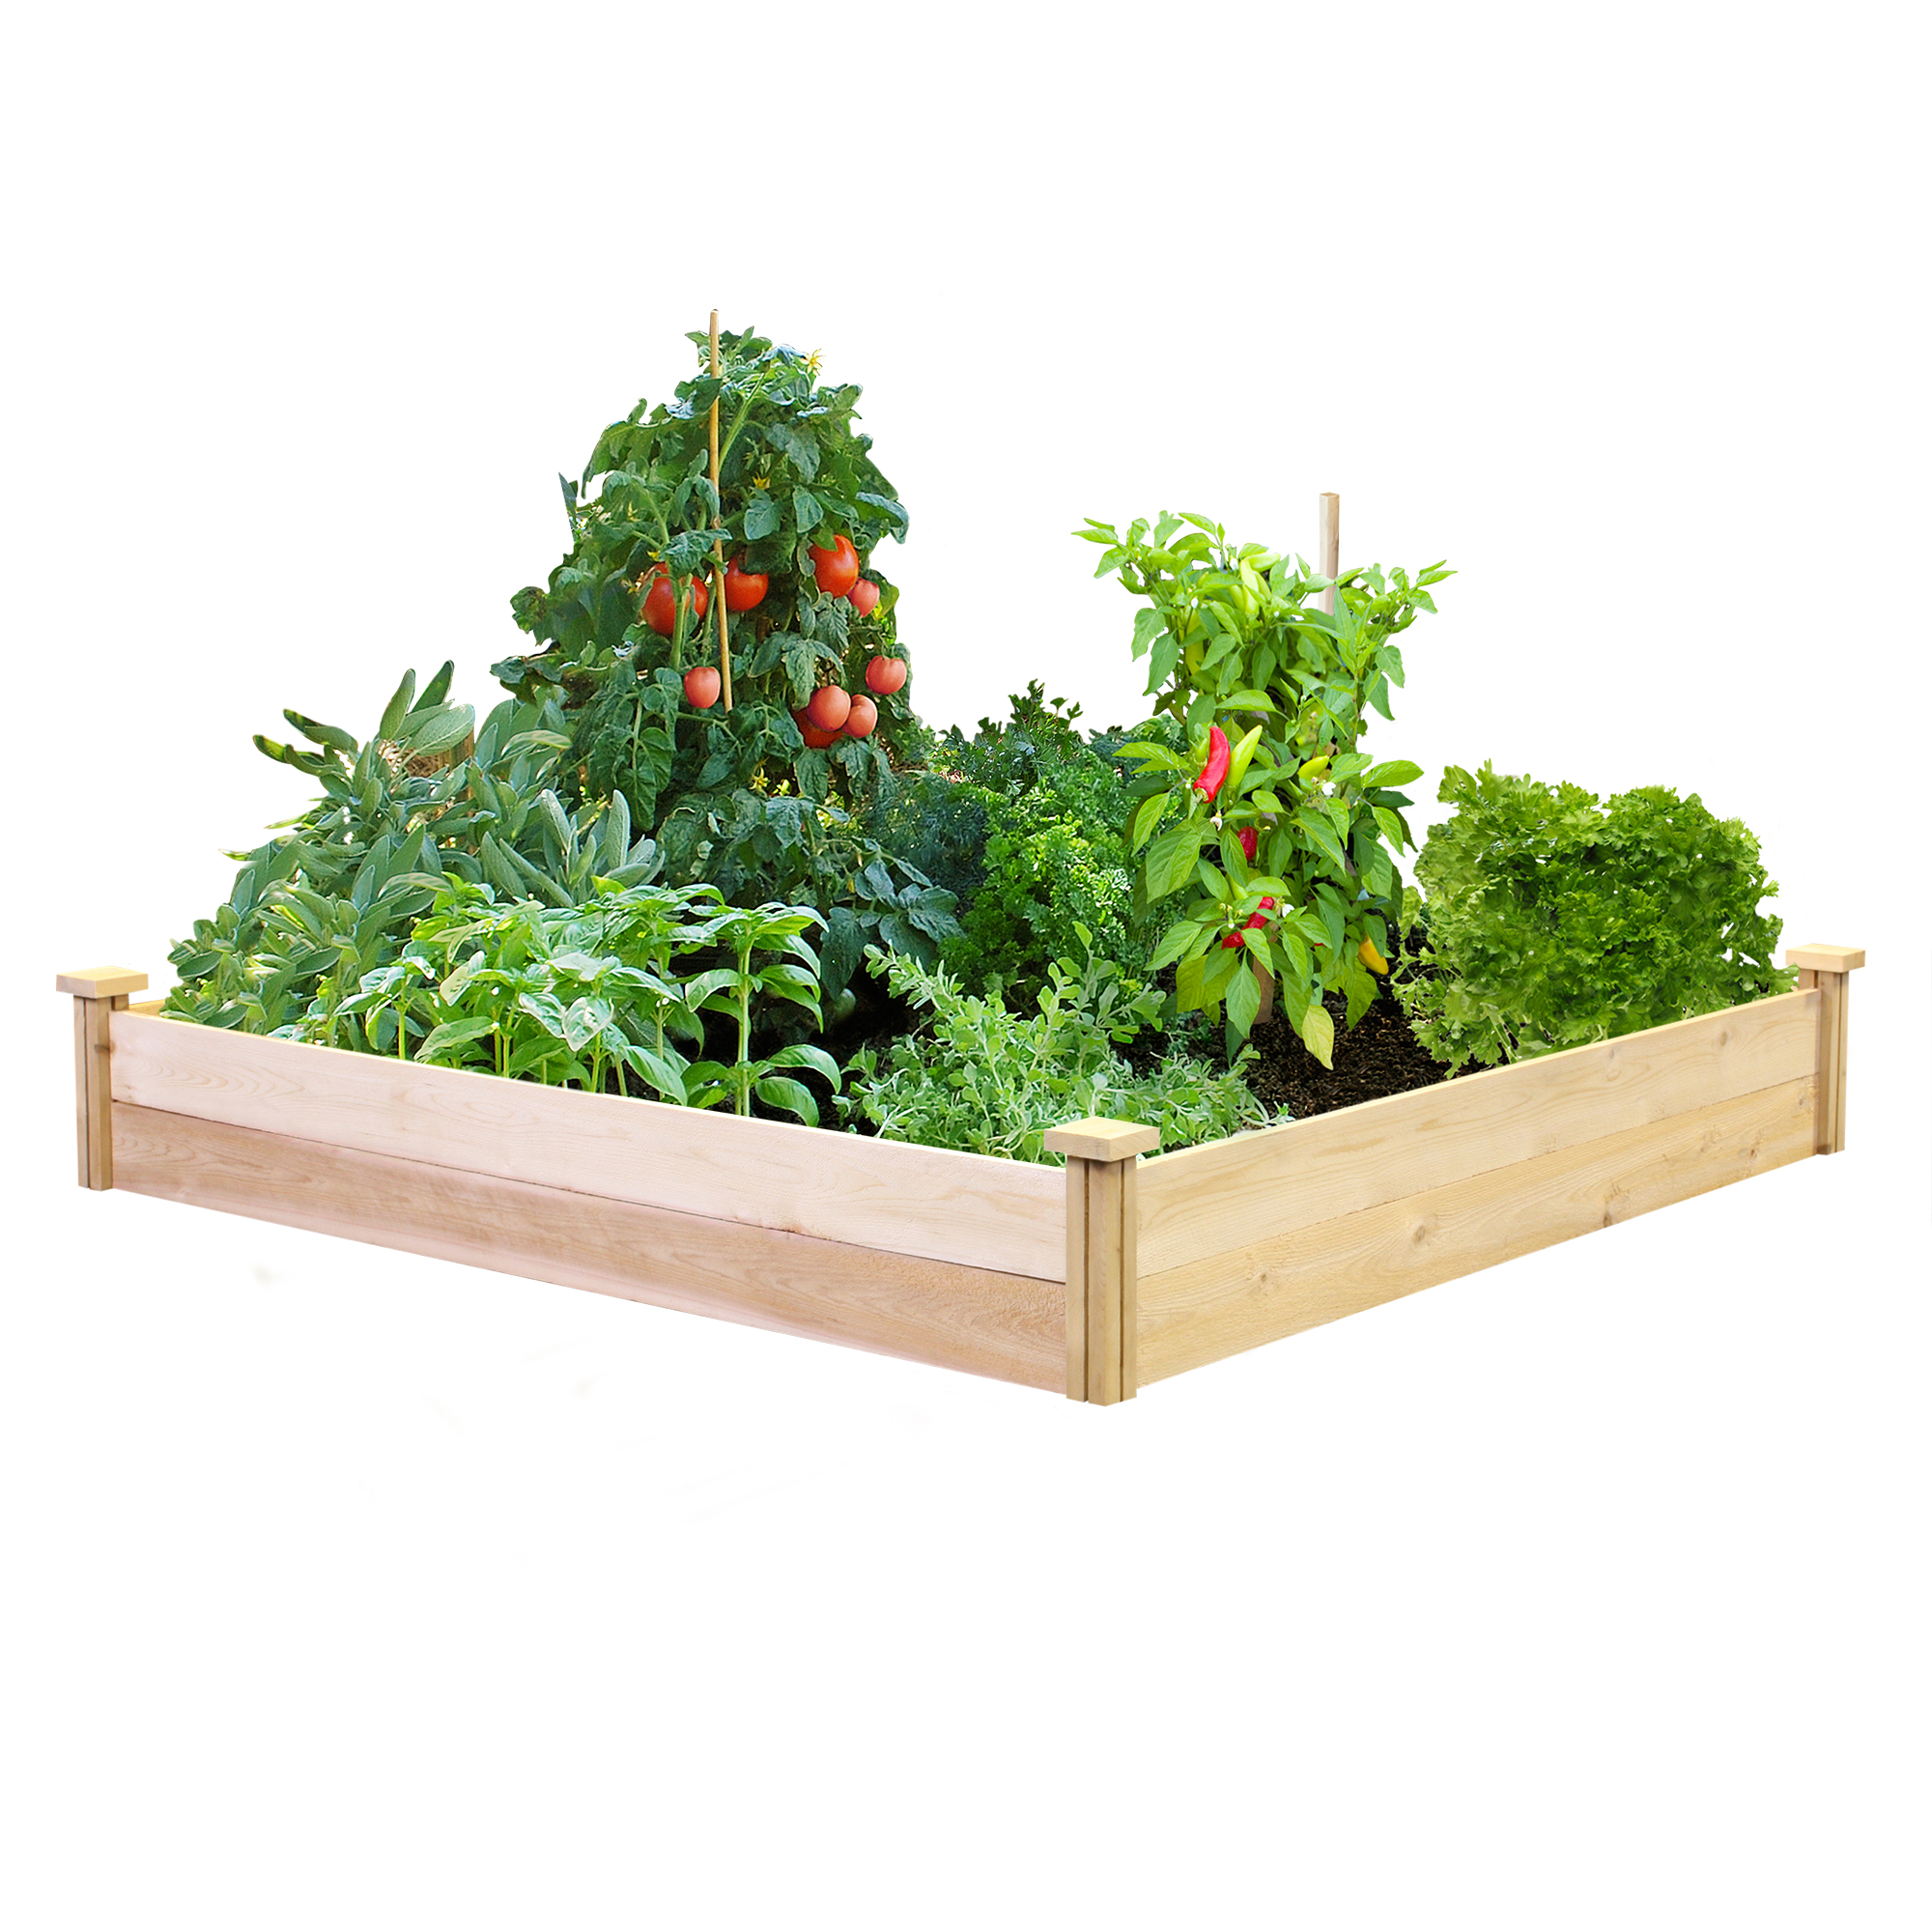 Greenes Value Cedar Raised Garden Bed 4 ft. x 4 ft. x 7 in., Unfinished (.5-.625 in. thick)